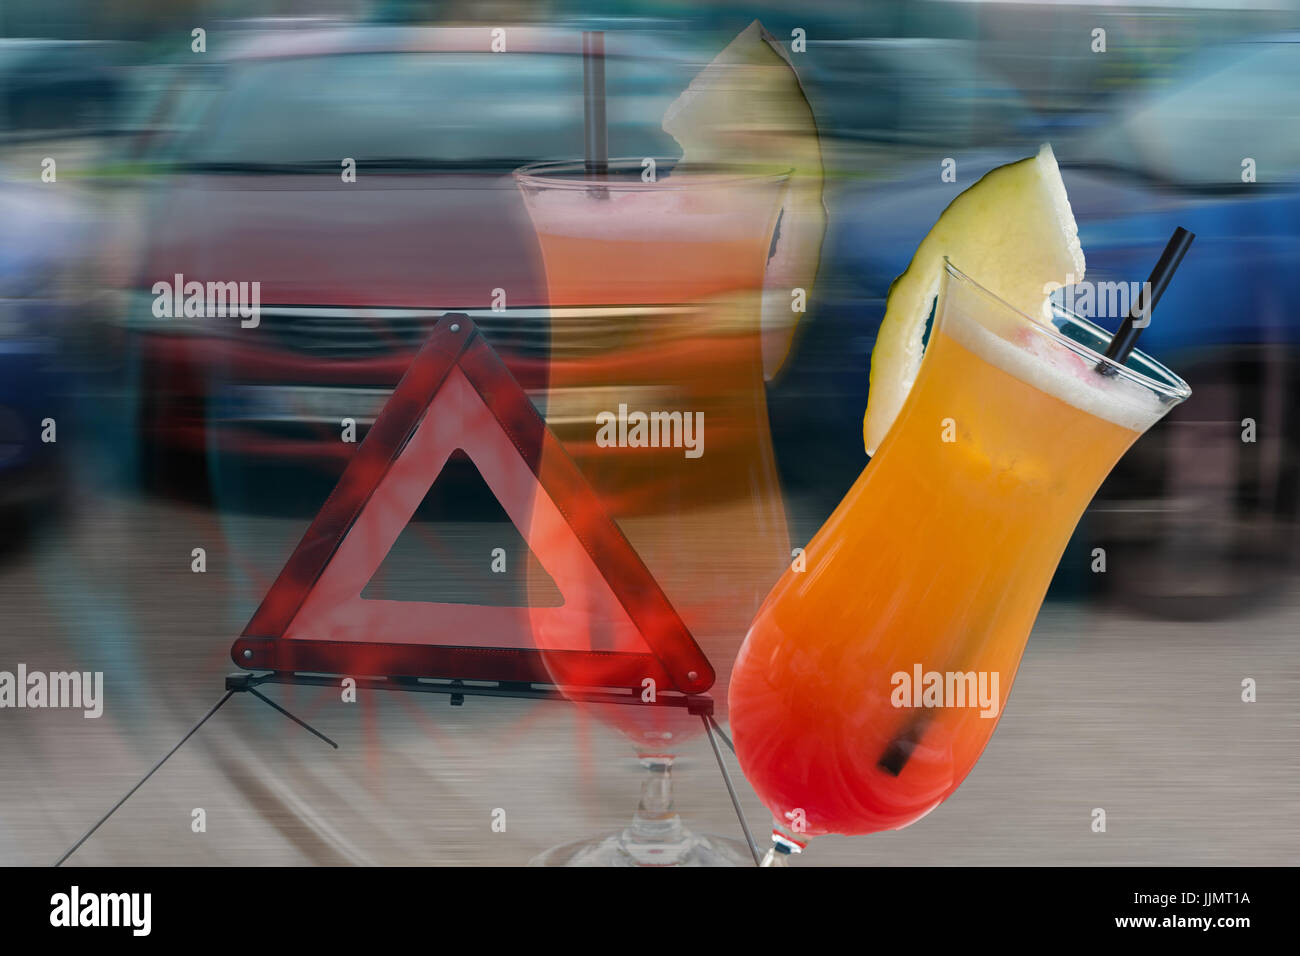 Cocktail glass with melon tip over in the background car crash scene intentionally blurred. Symbolic of alcohol - Stock Image